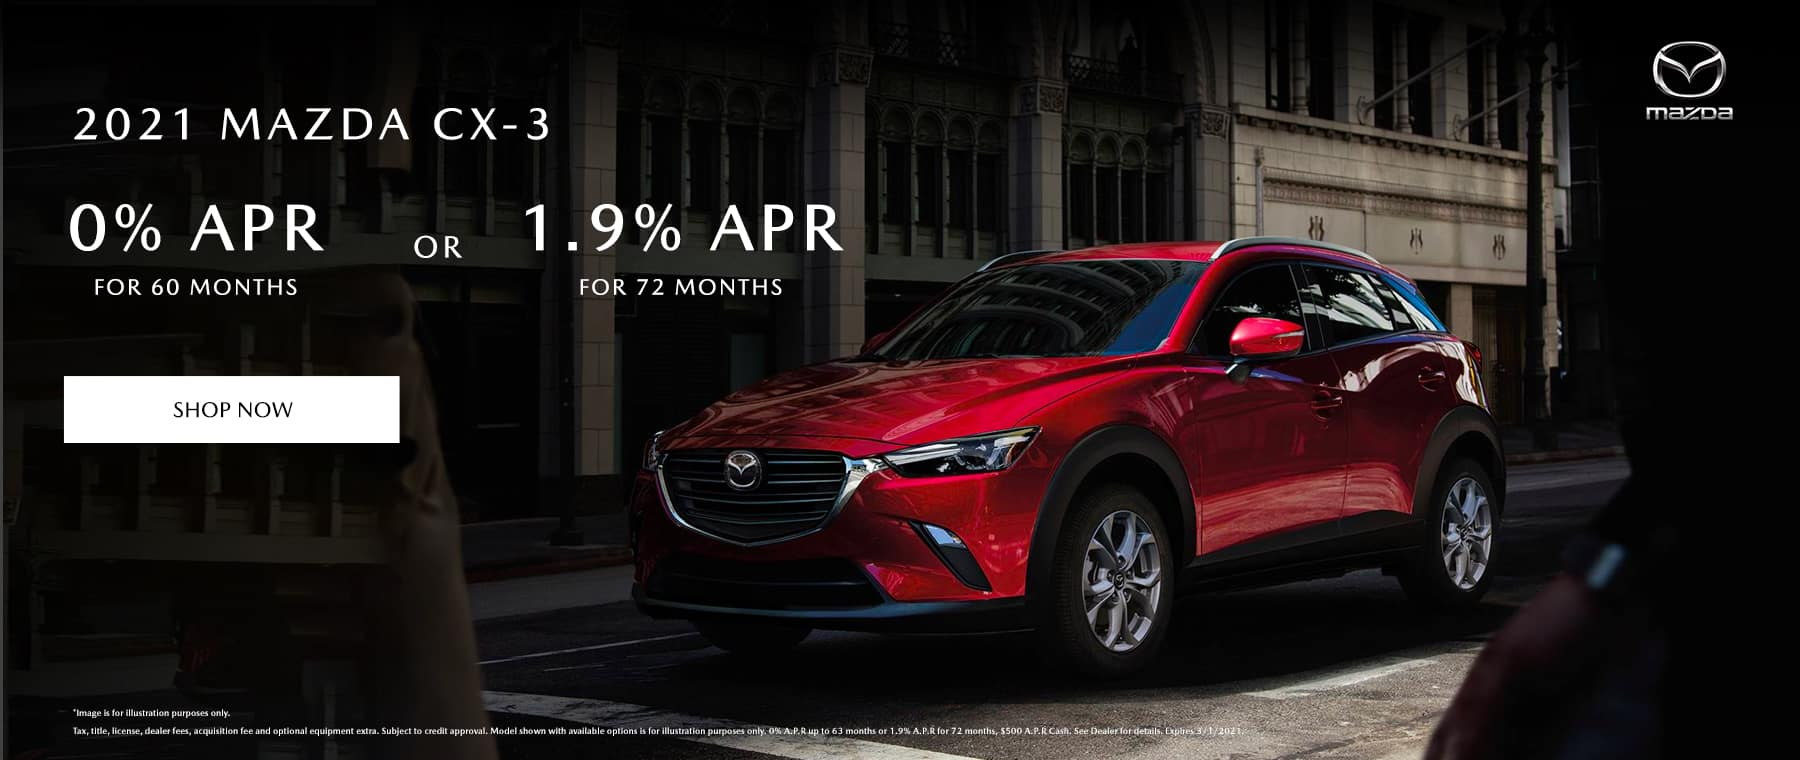 2021 Mazda CX-3 0% for 60 or 1.9% for 72